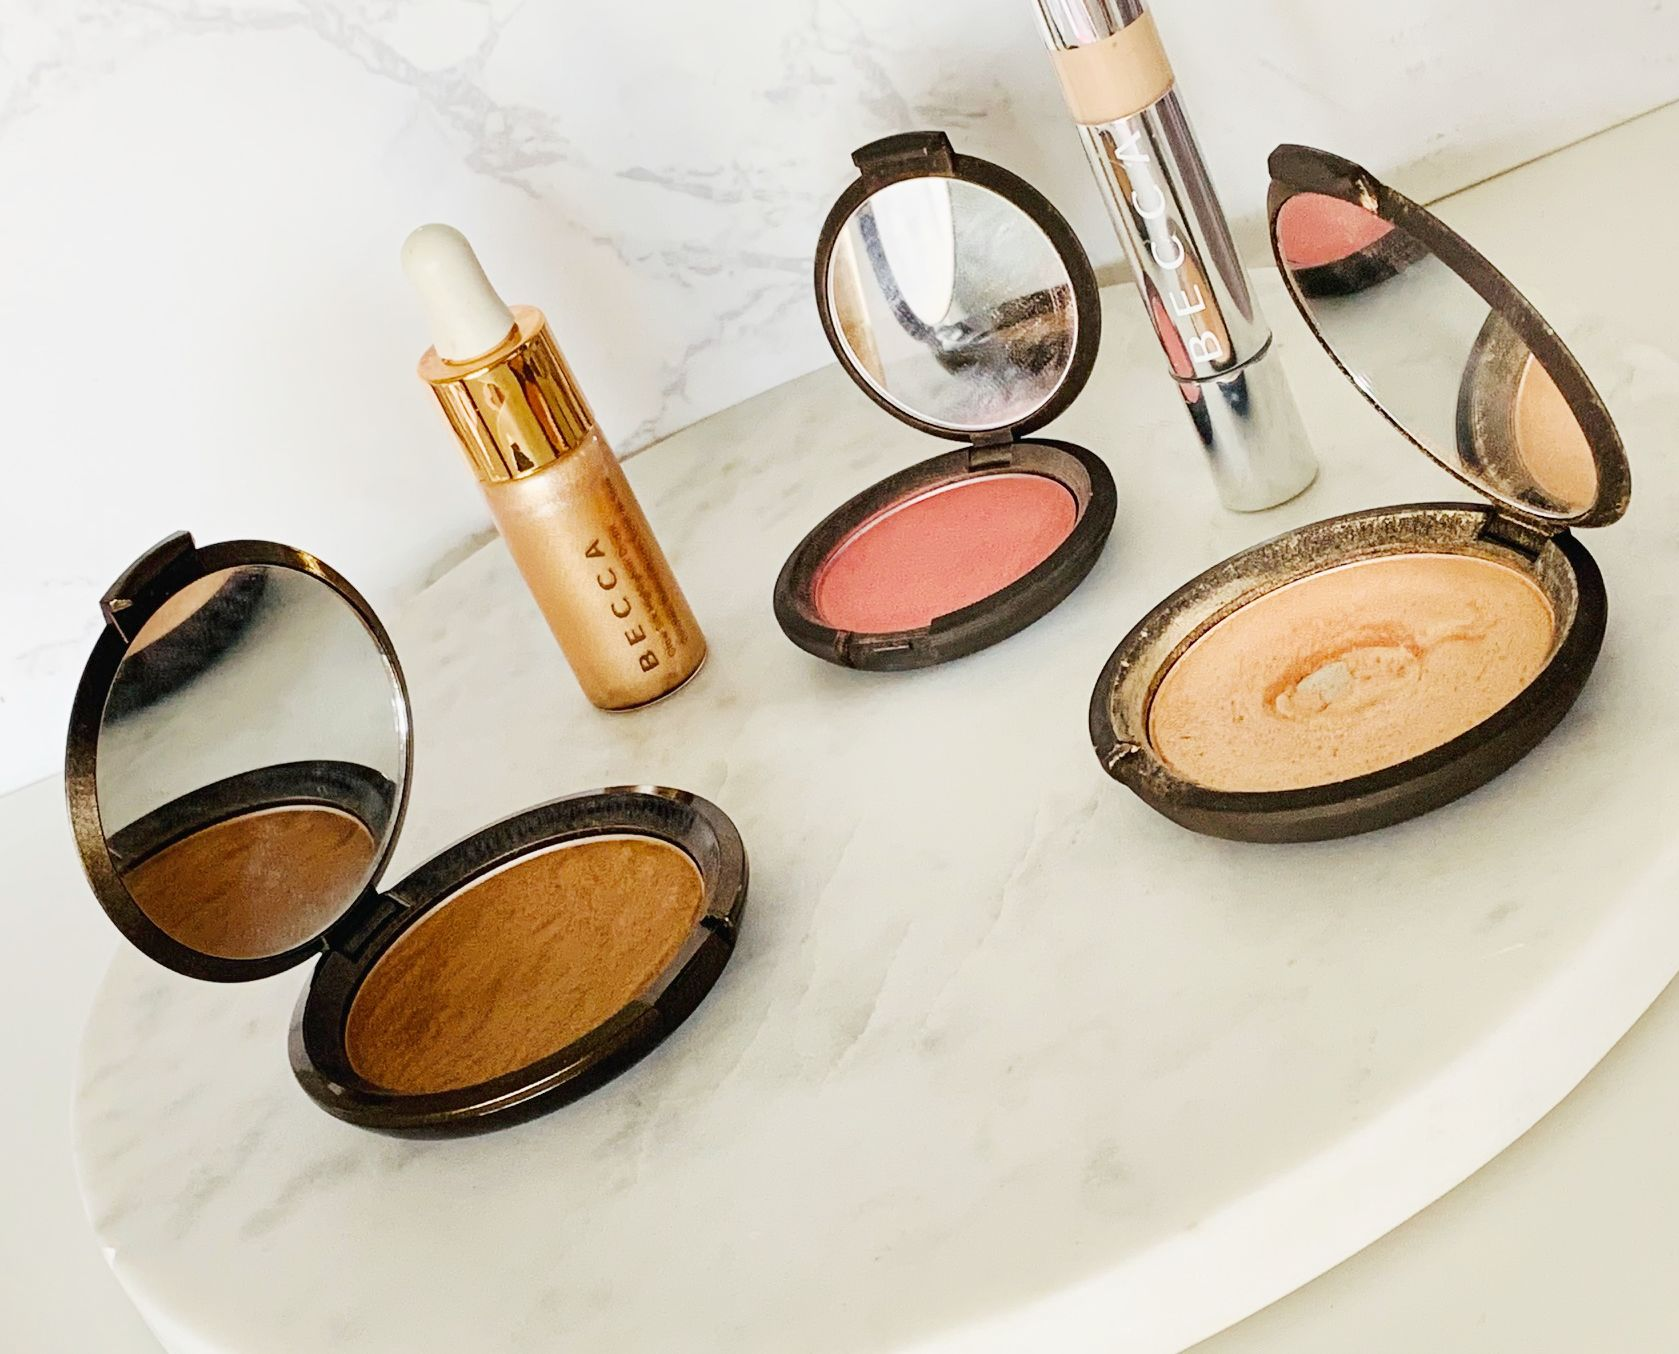 My favourite Becca products